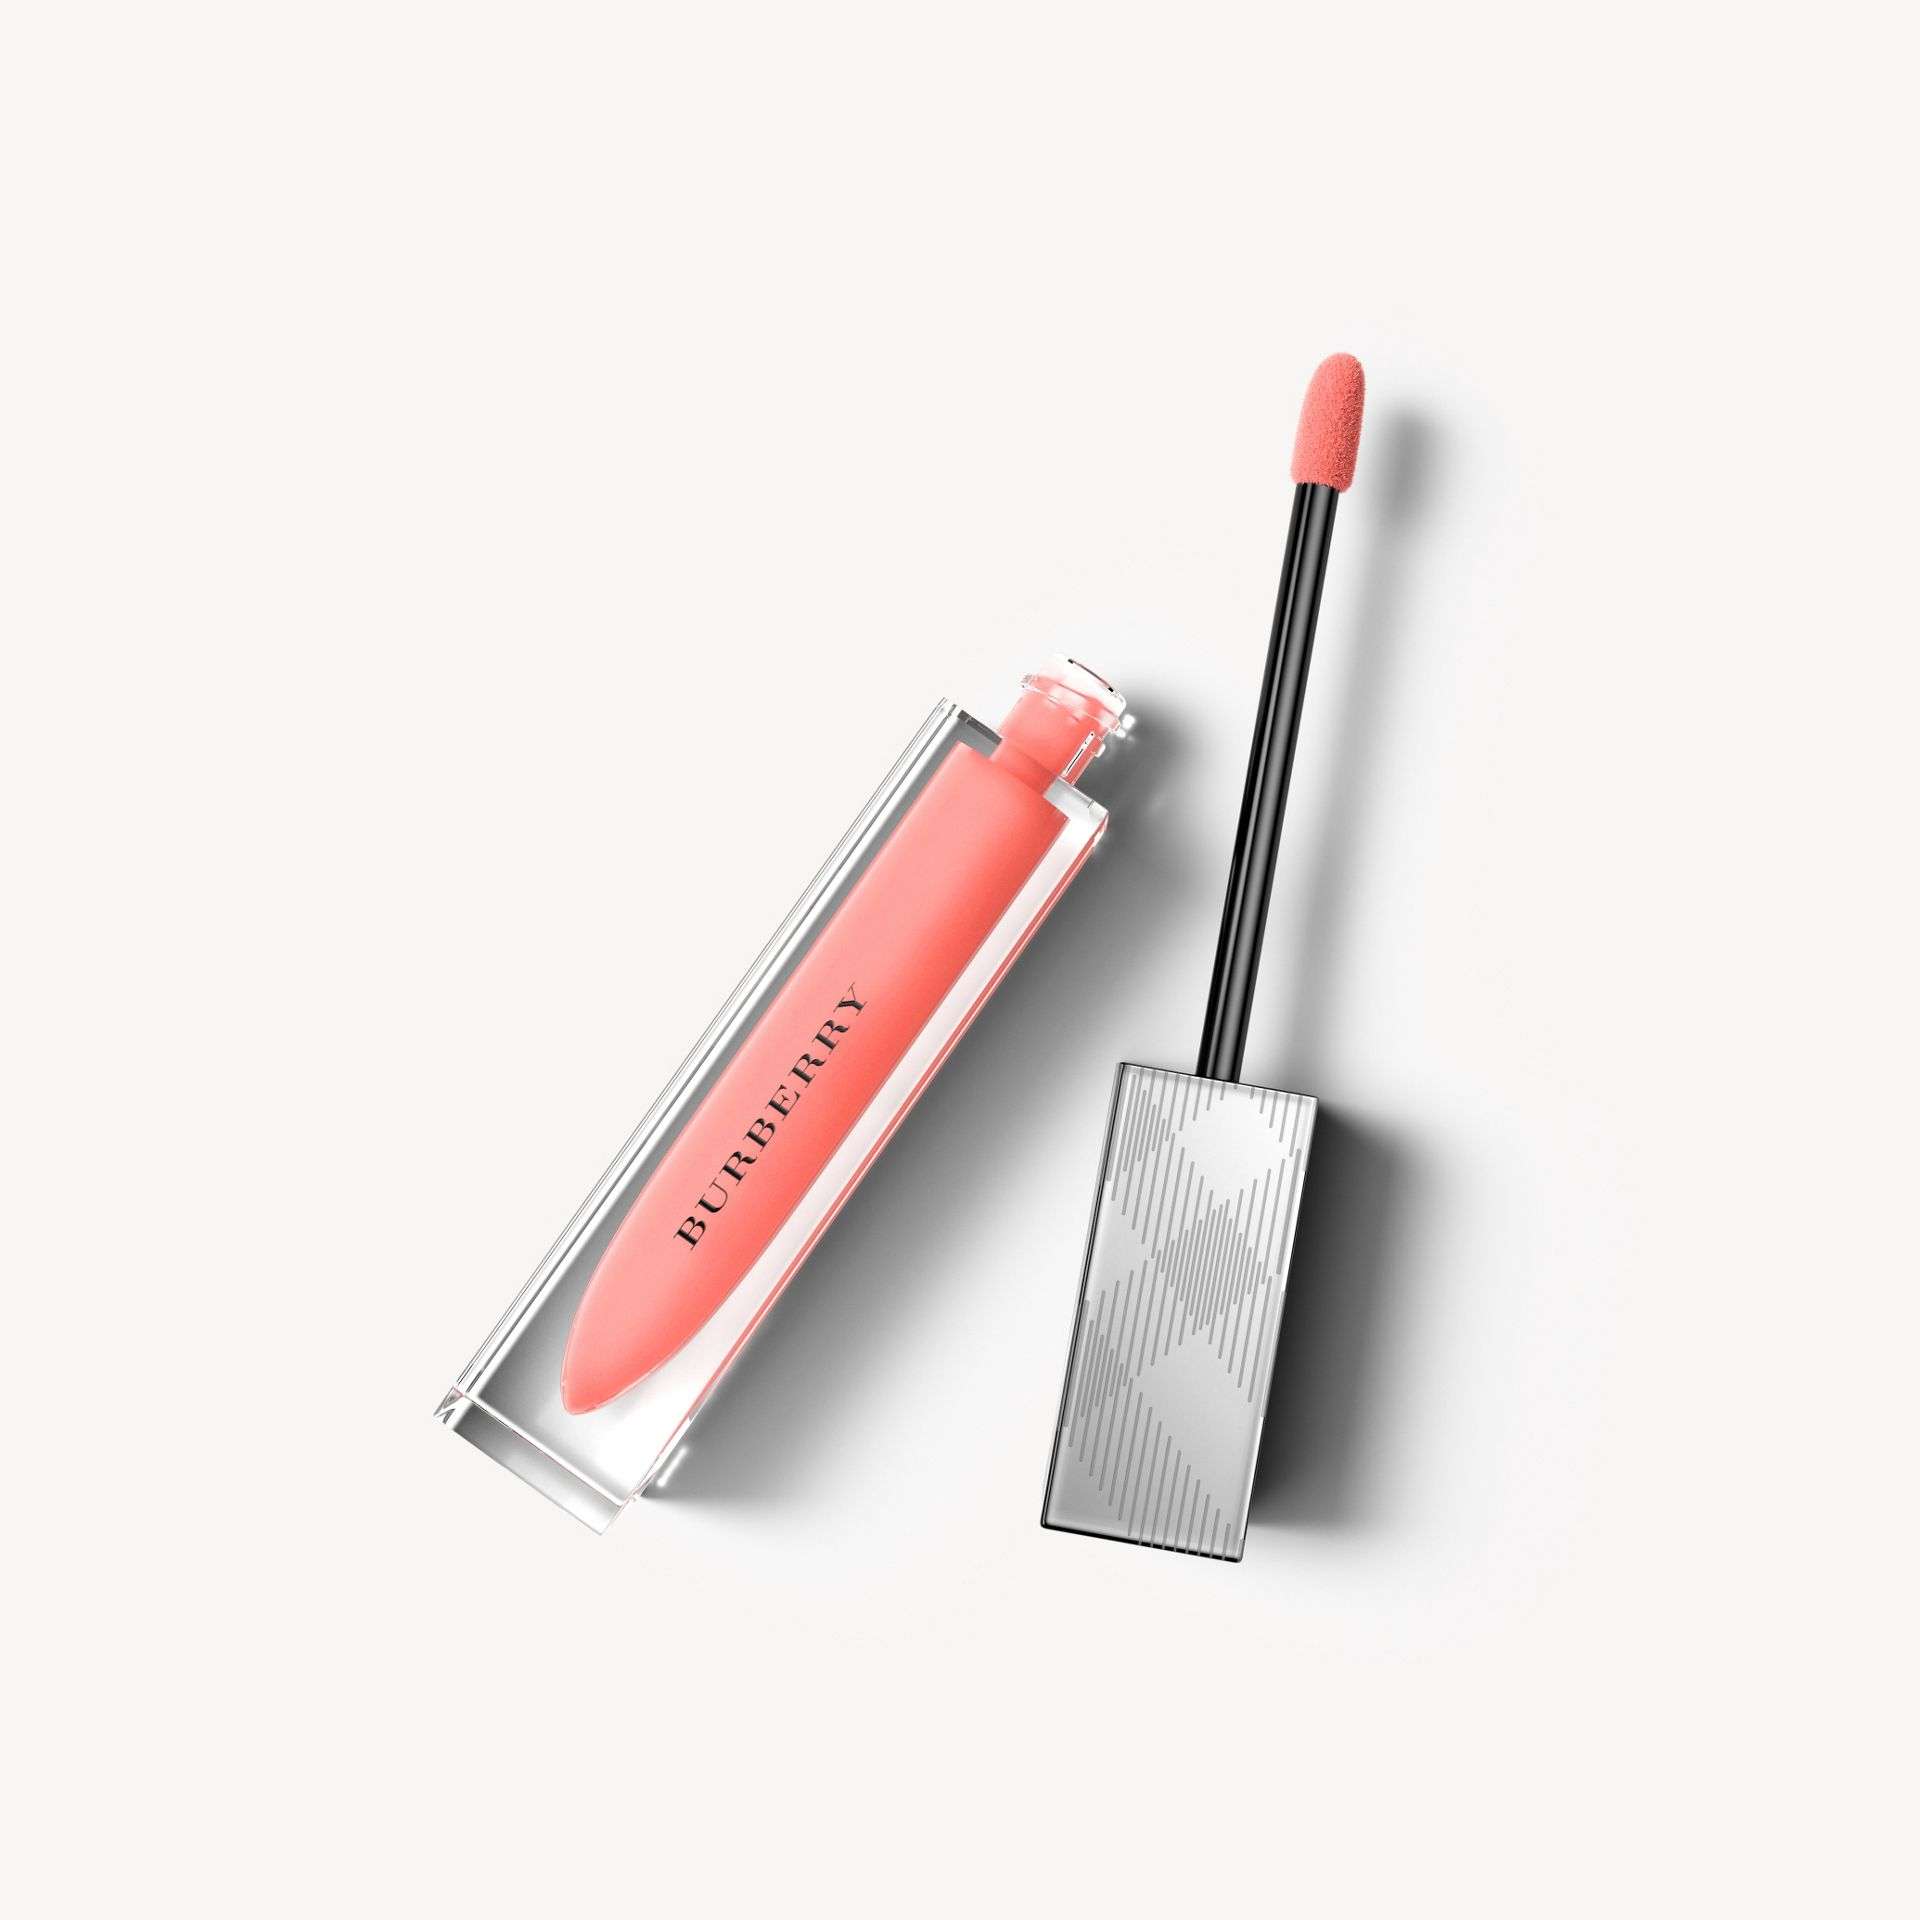 Melon no.73 Brilho labial Burberry Kisses Gloss - Melon No.73 - galeria de imagens 1